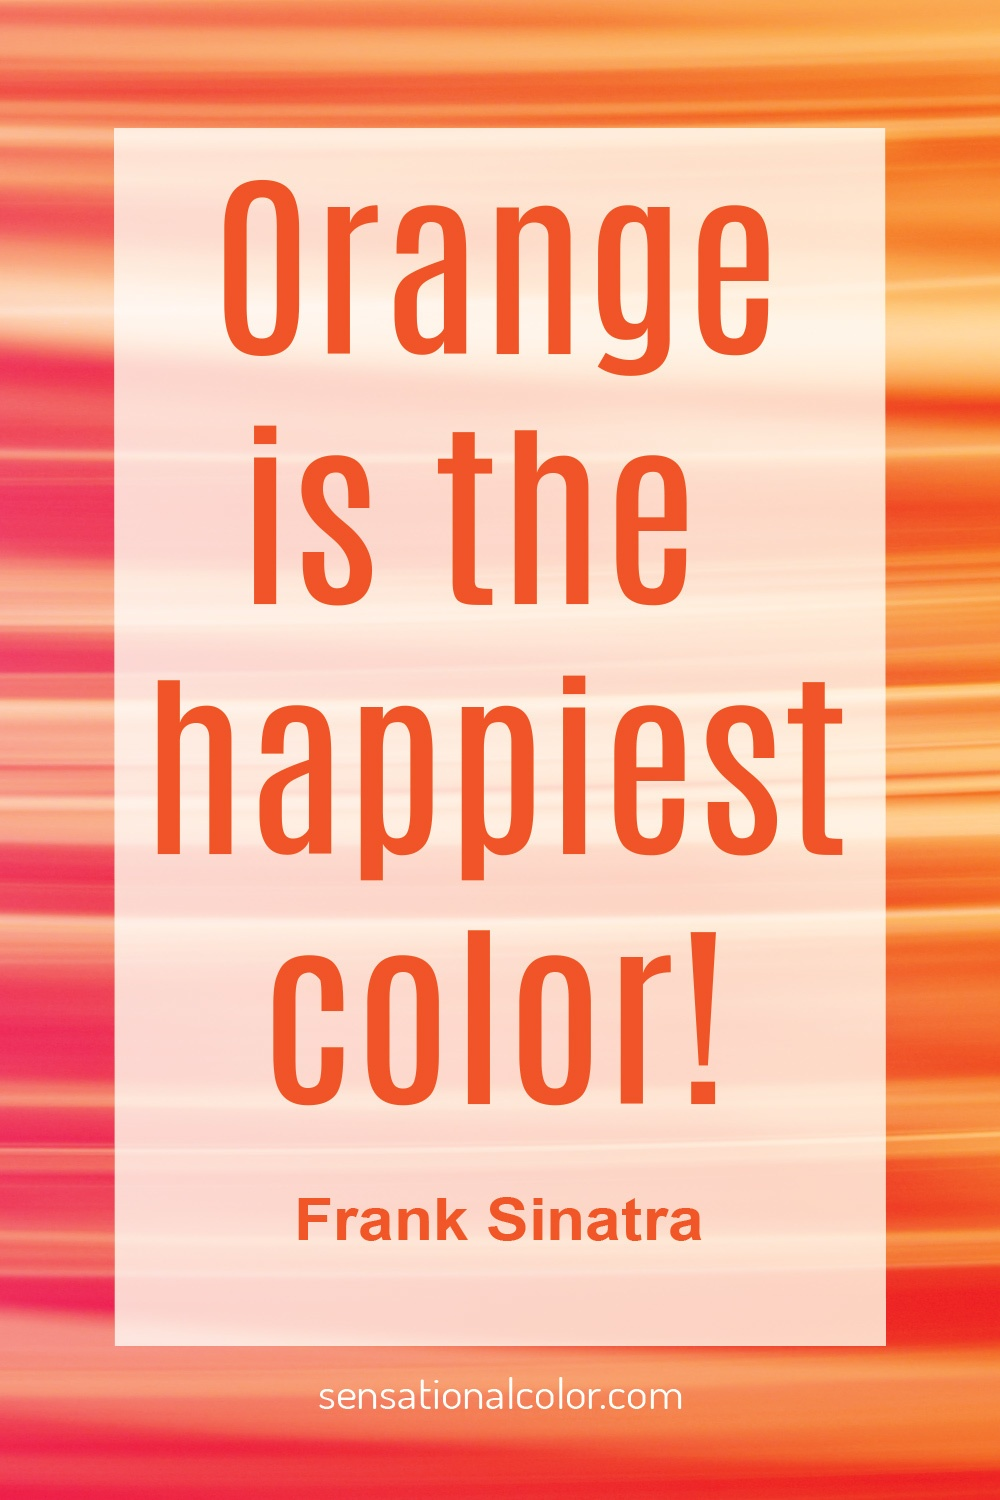 """Orange is the happiest color"" - Frank Sinatra"